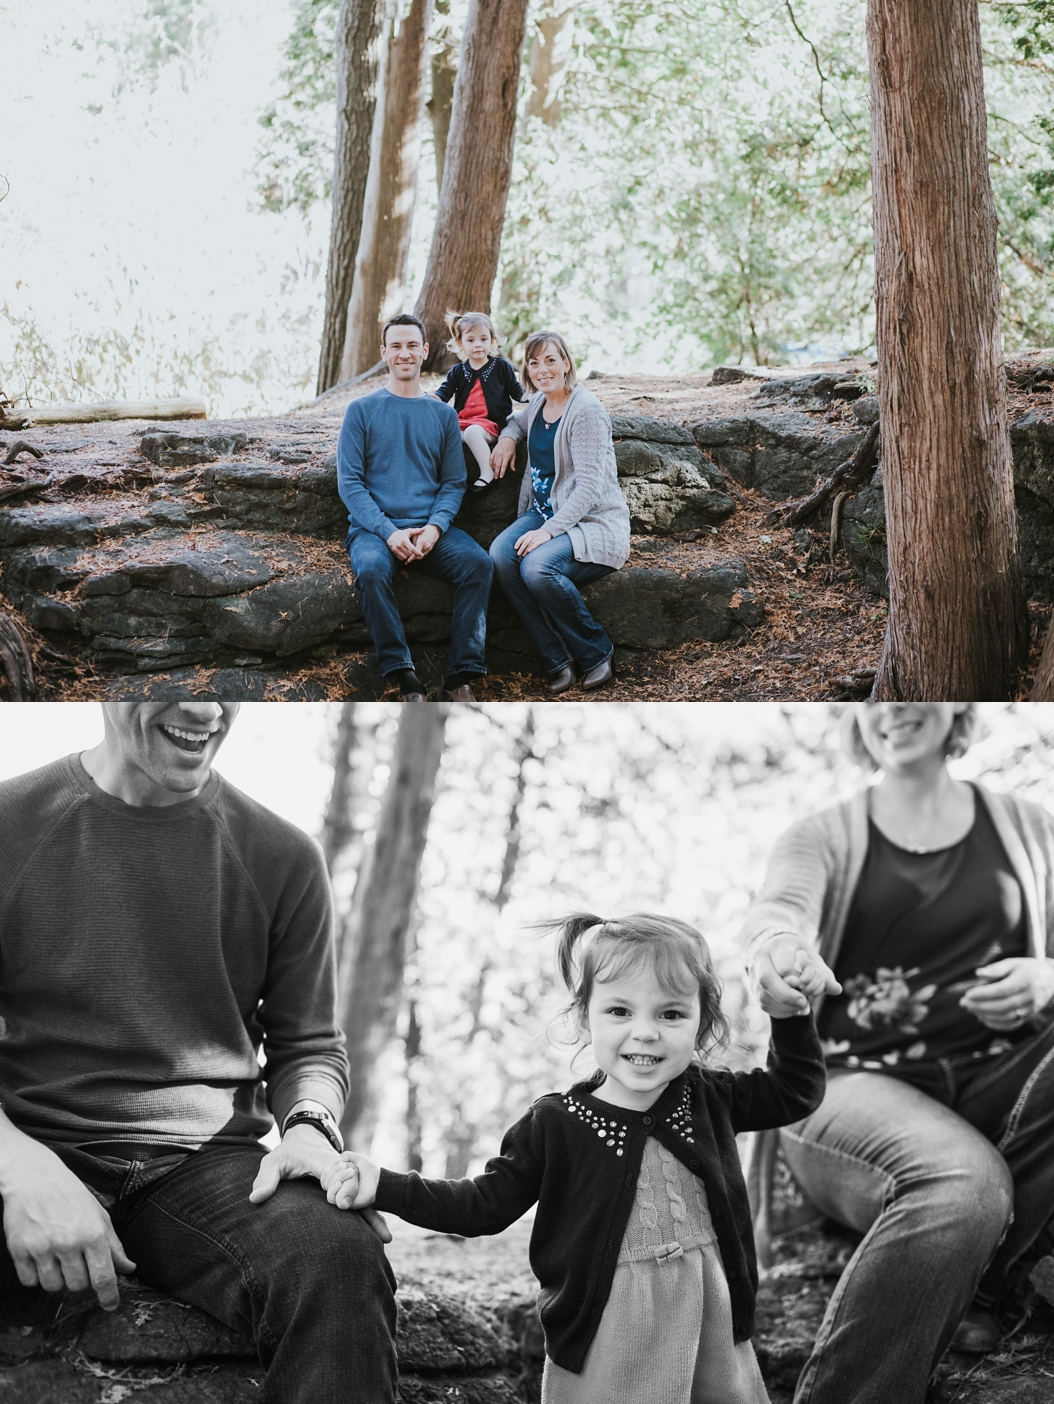 Rockwood-Conservation-family-photography-307-2.jpg